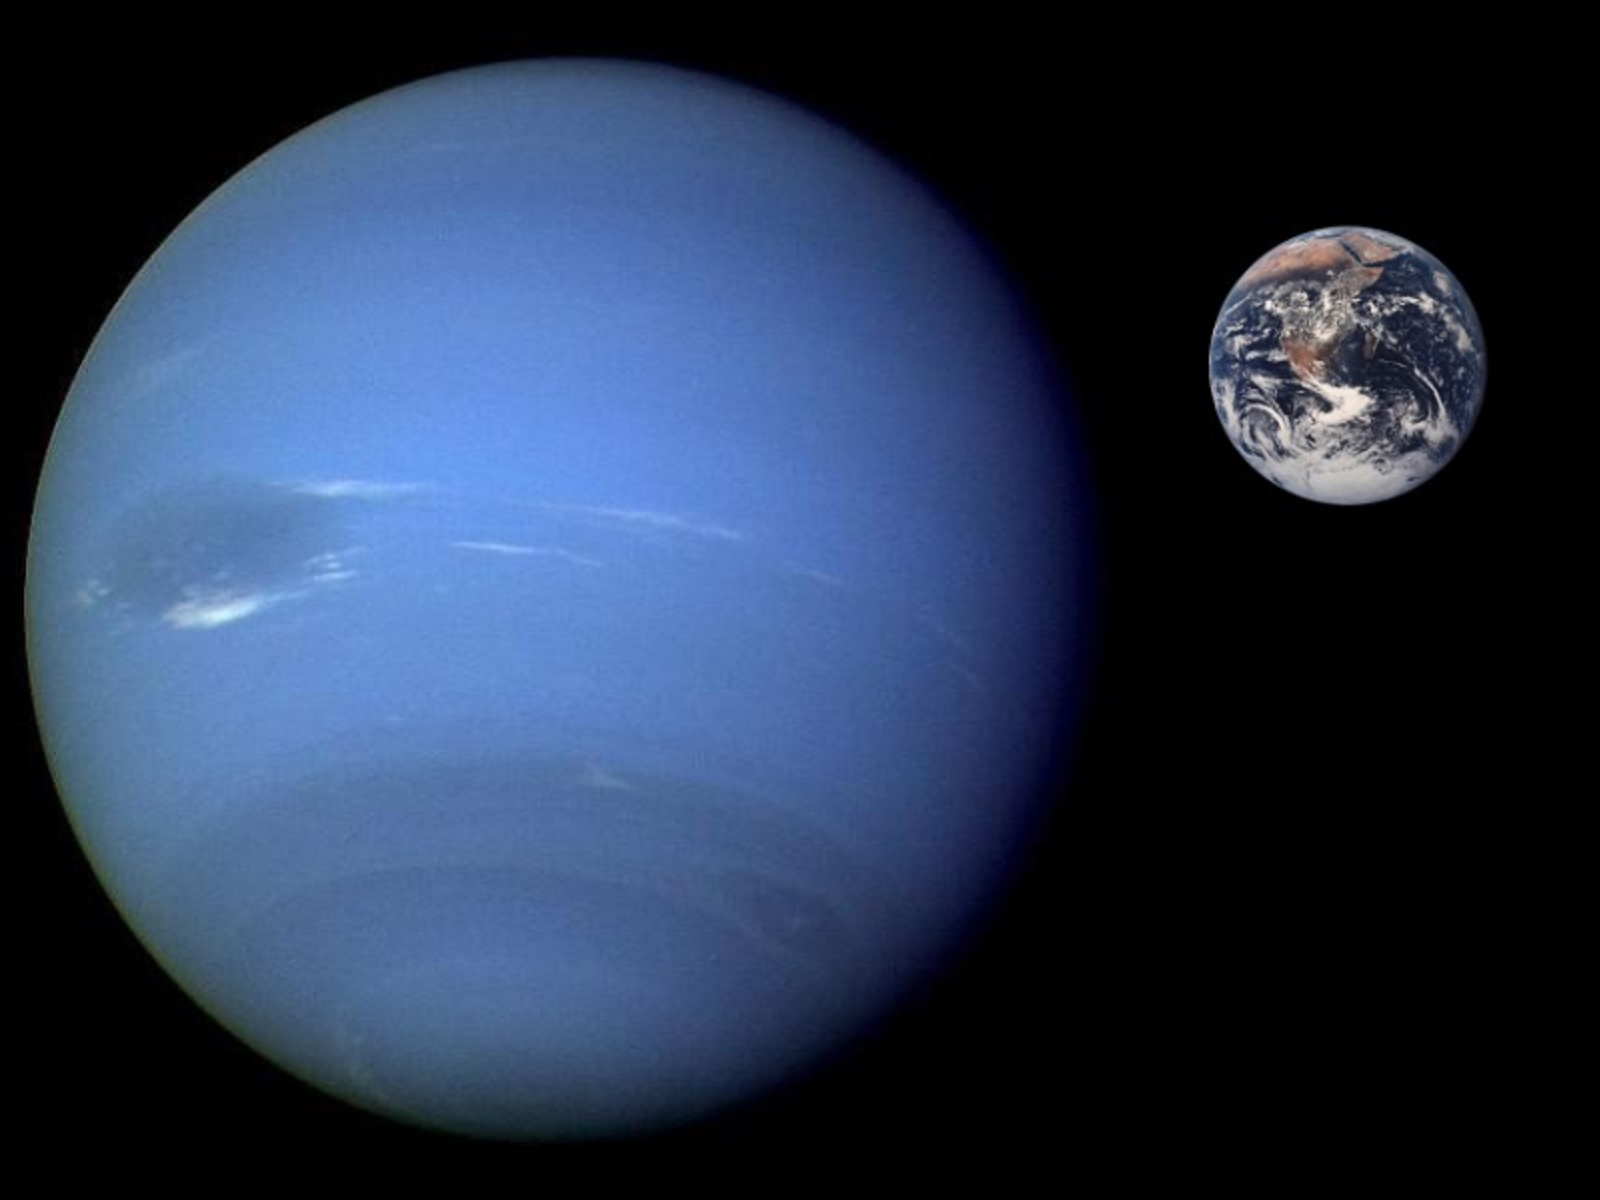 neptune compared to earth